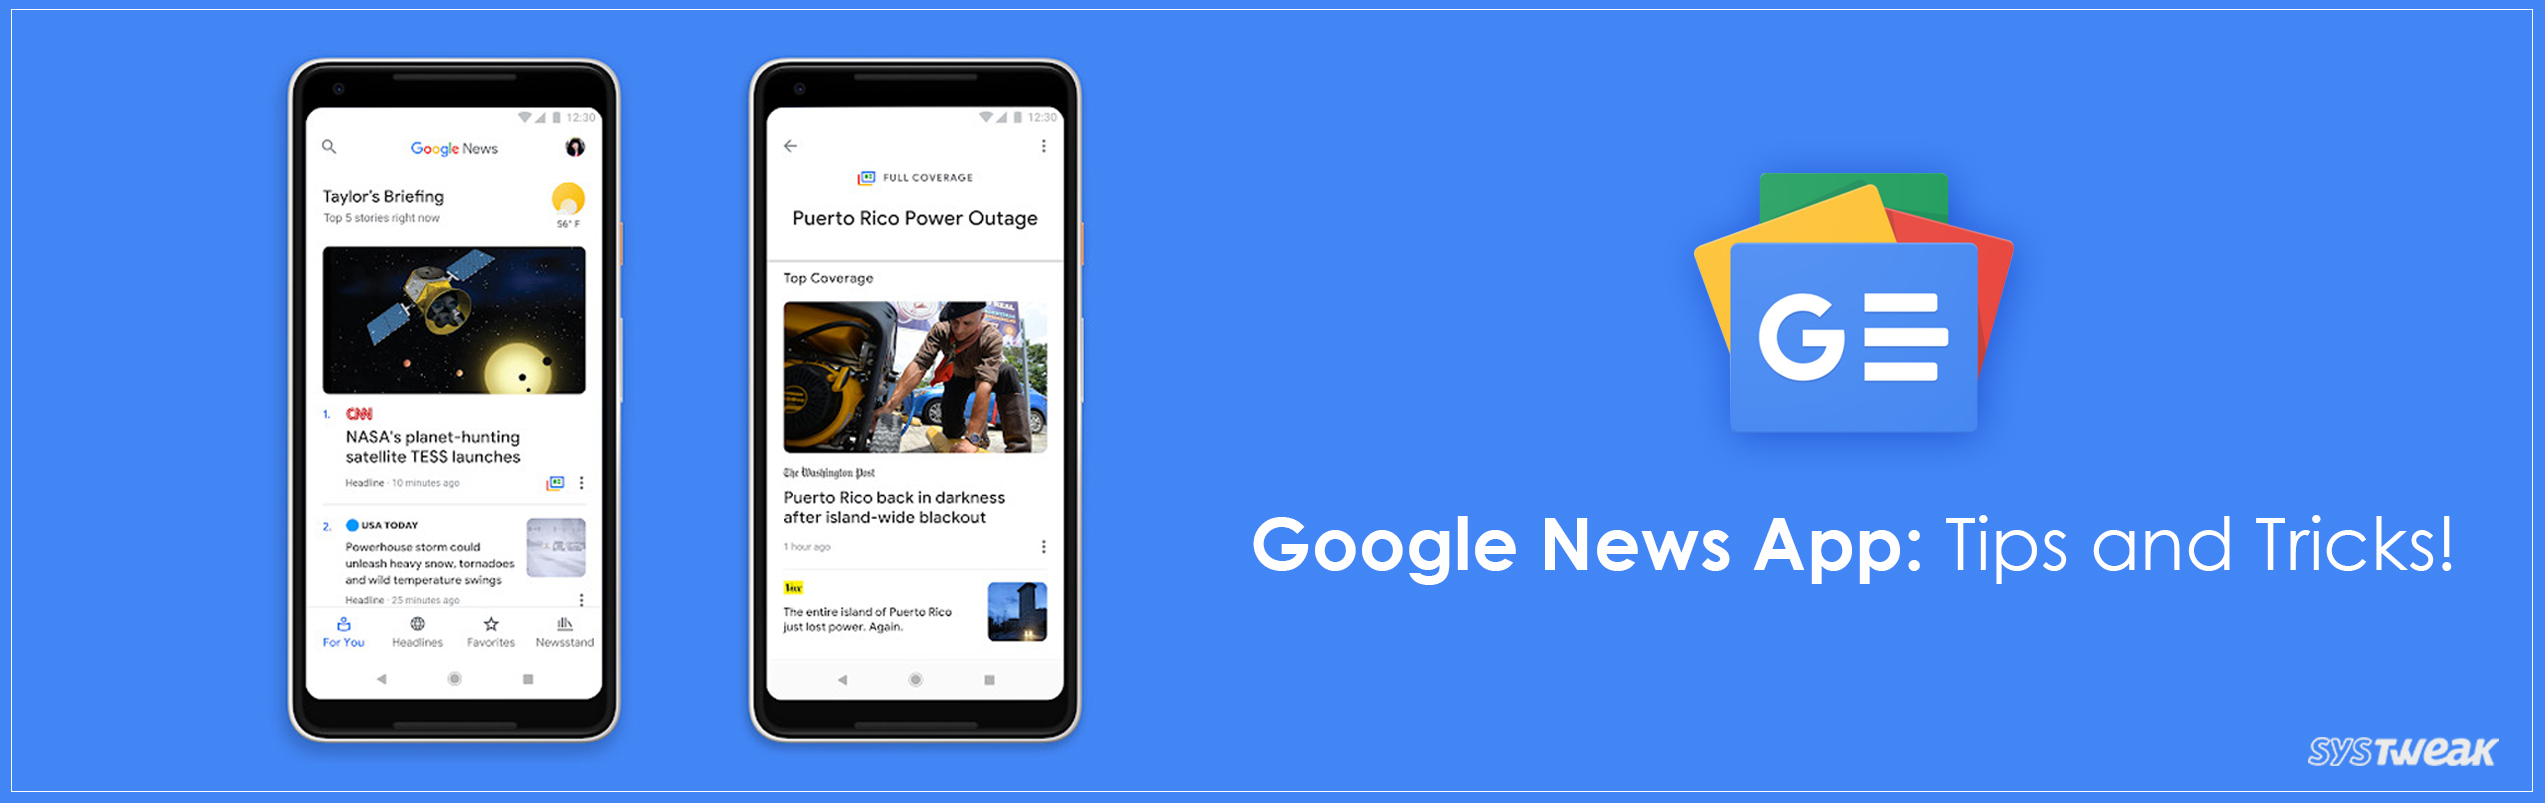 5 Tips and Tricks to Make the Most of Google News App